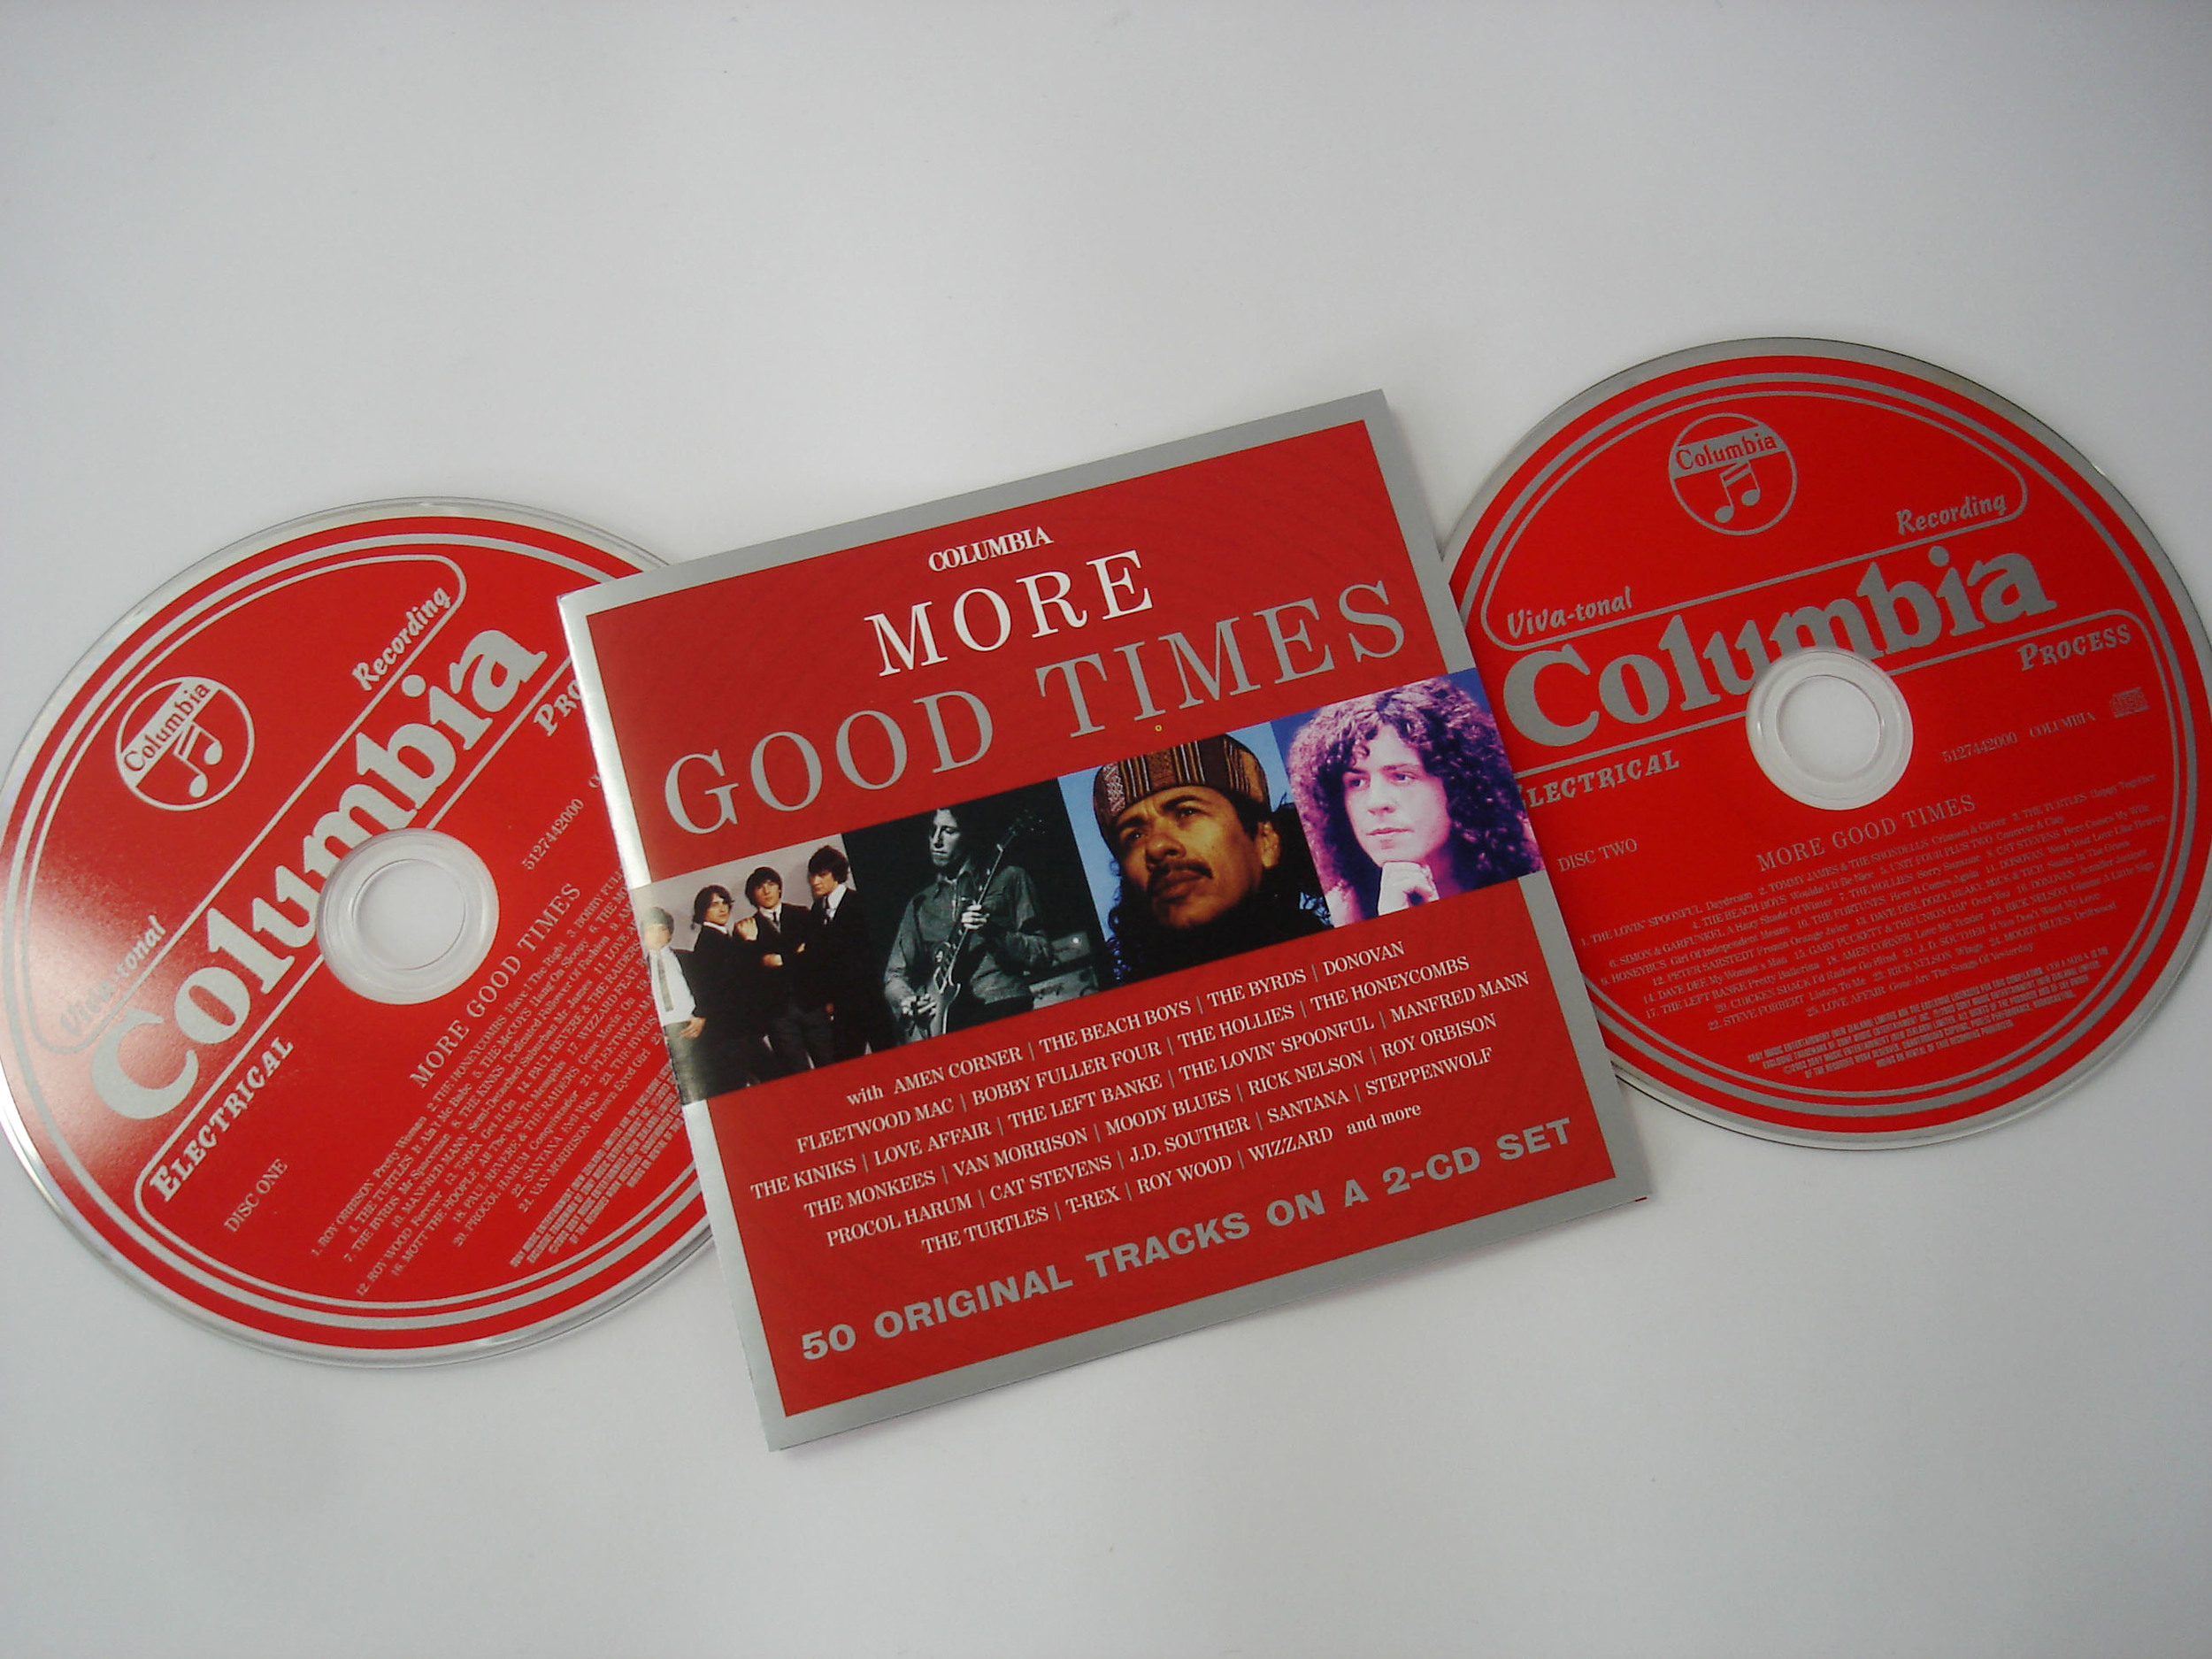 VARIOUS ARTISTS - MORE GOOD TIMES